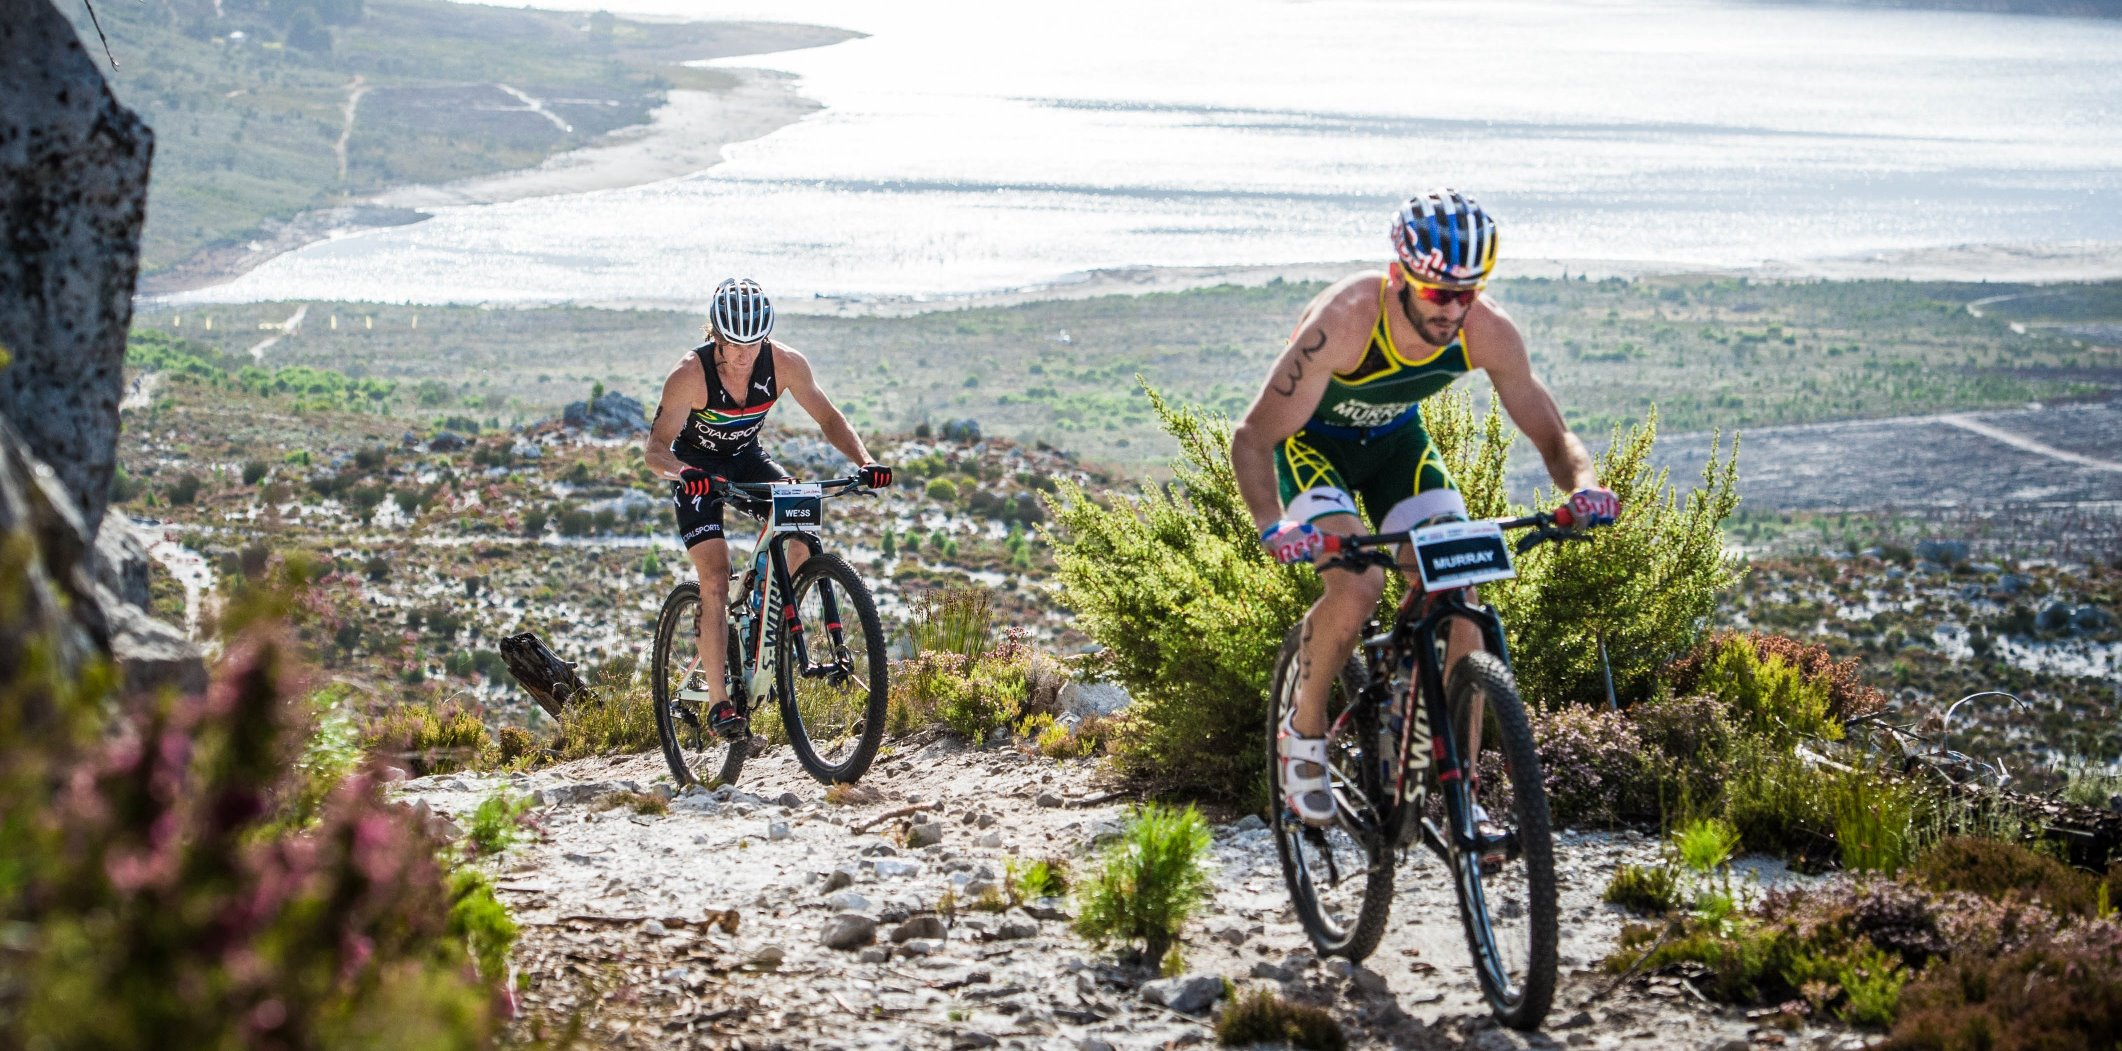 XTERRA SA entries open with an exciting announcement